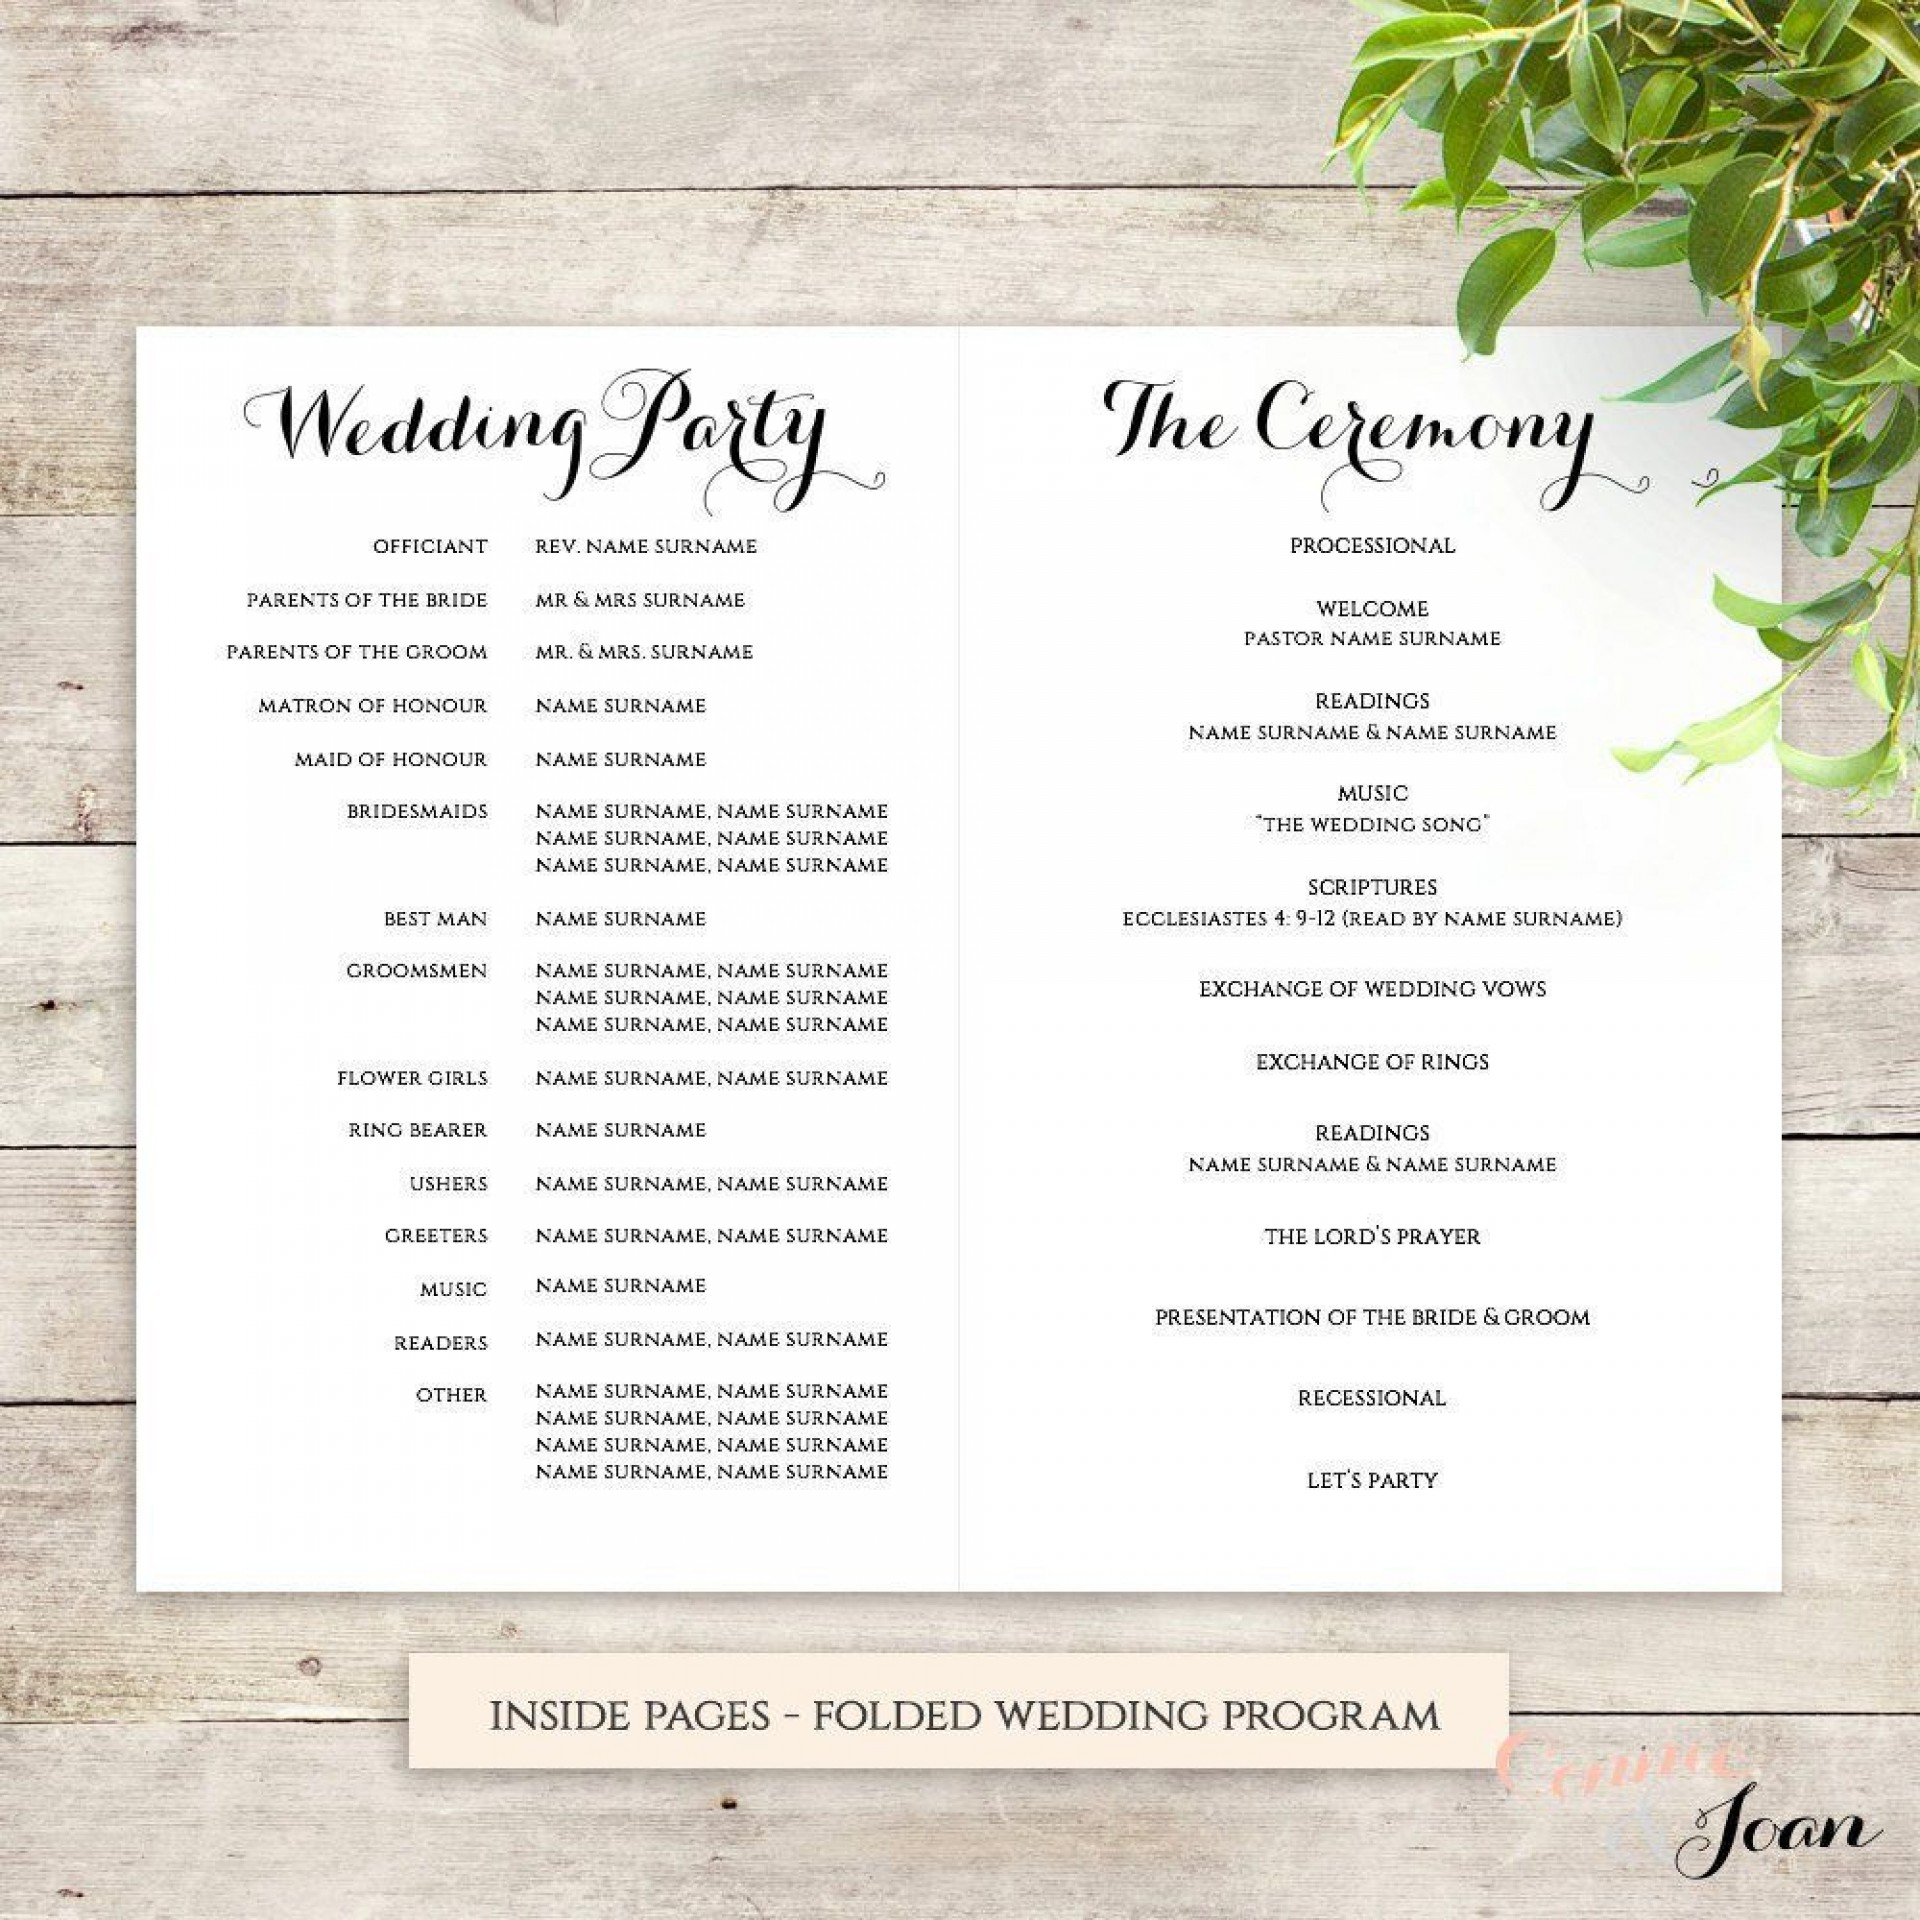 001 Breathtaking Wedding Order Of Service Template Highest Quality  Church Free Microsoft Word Download1920